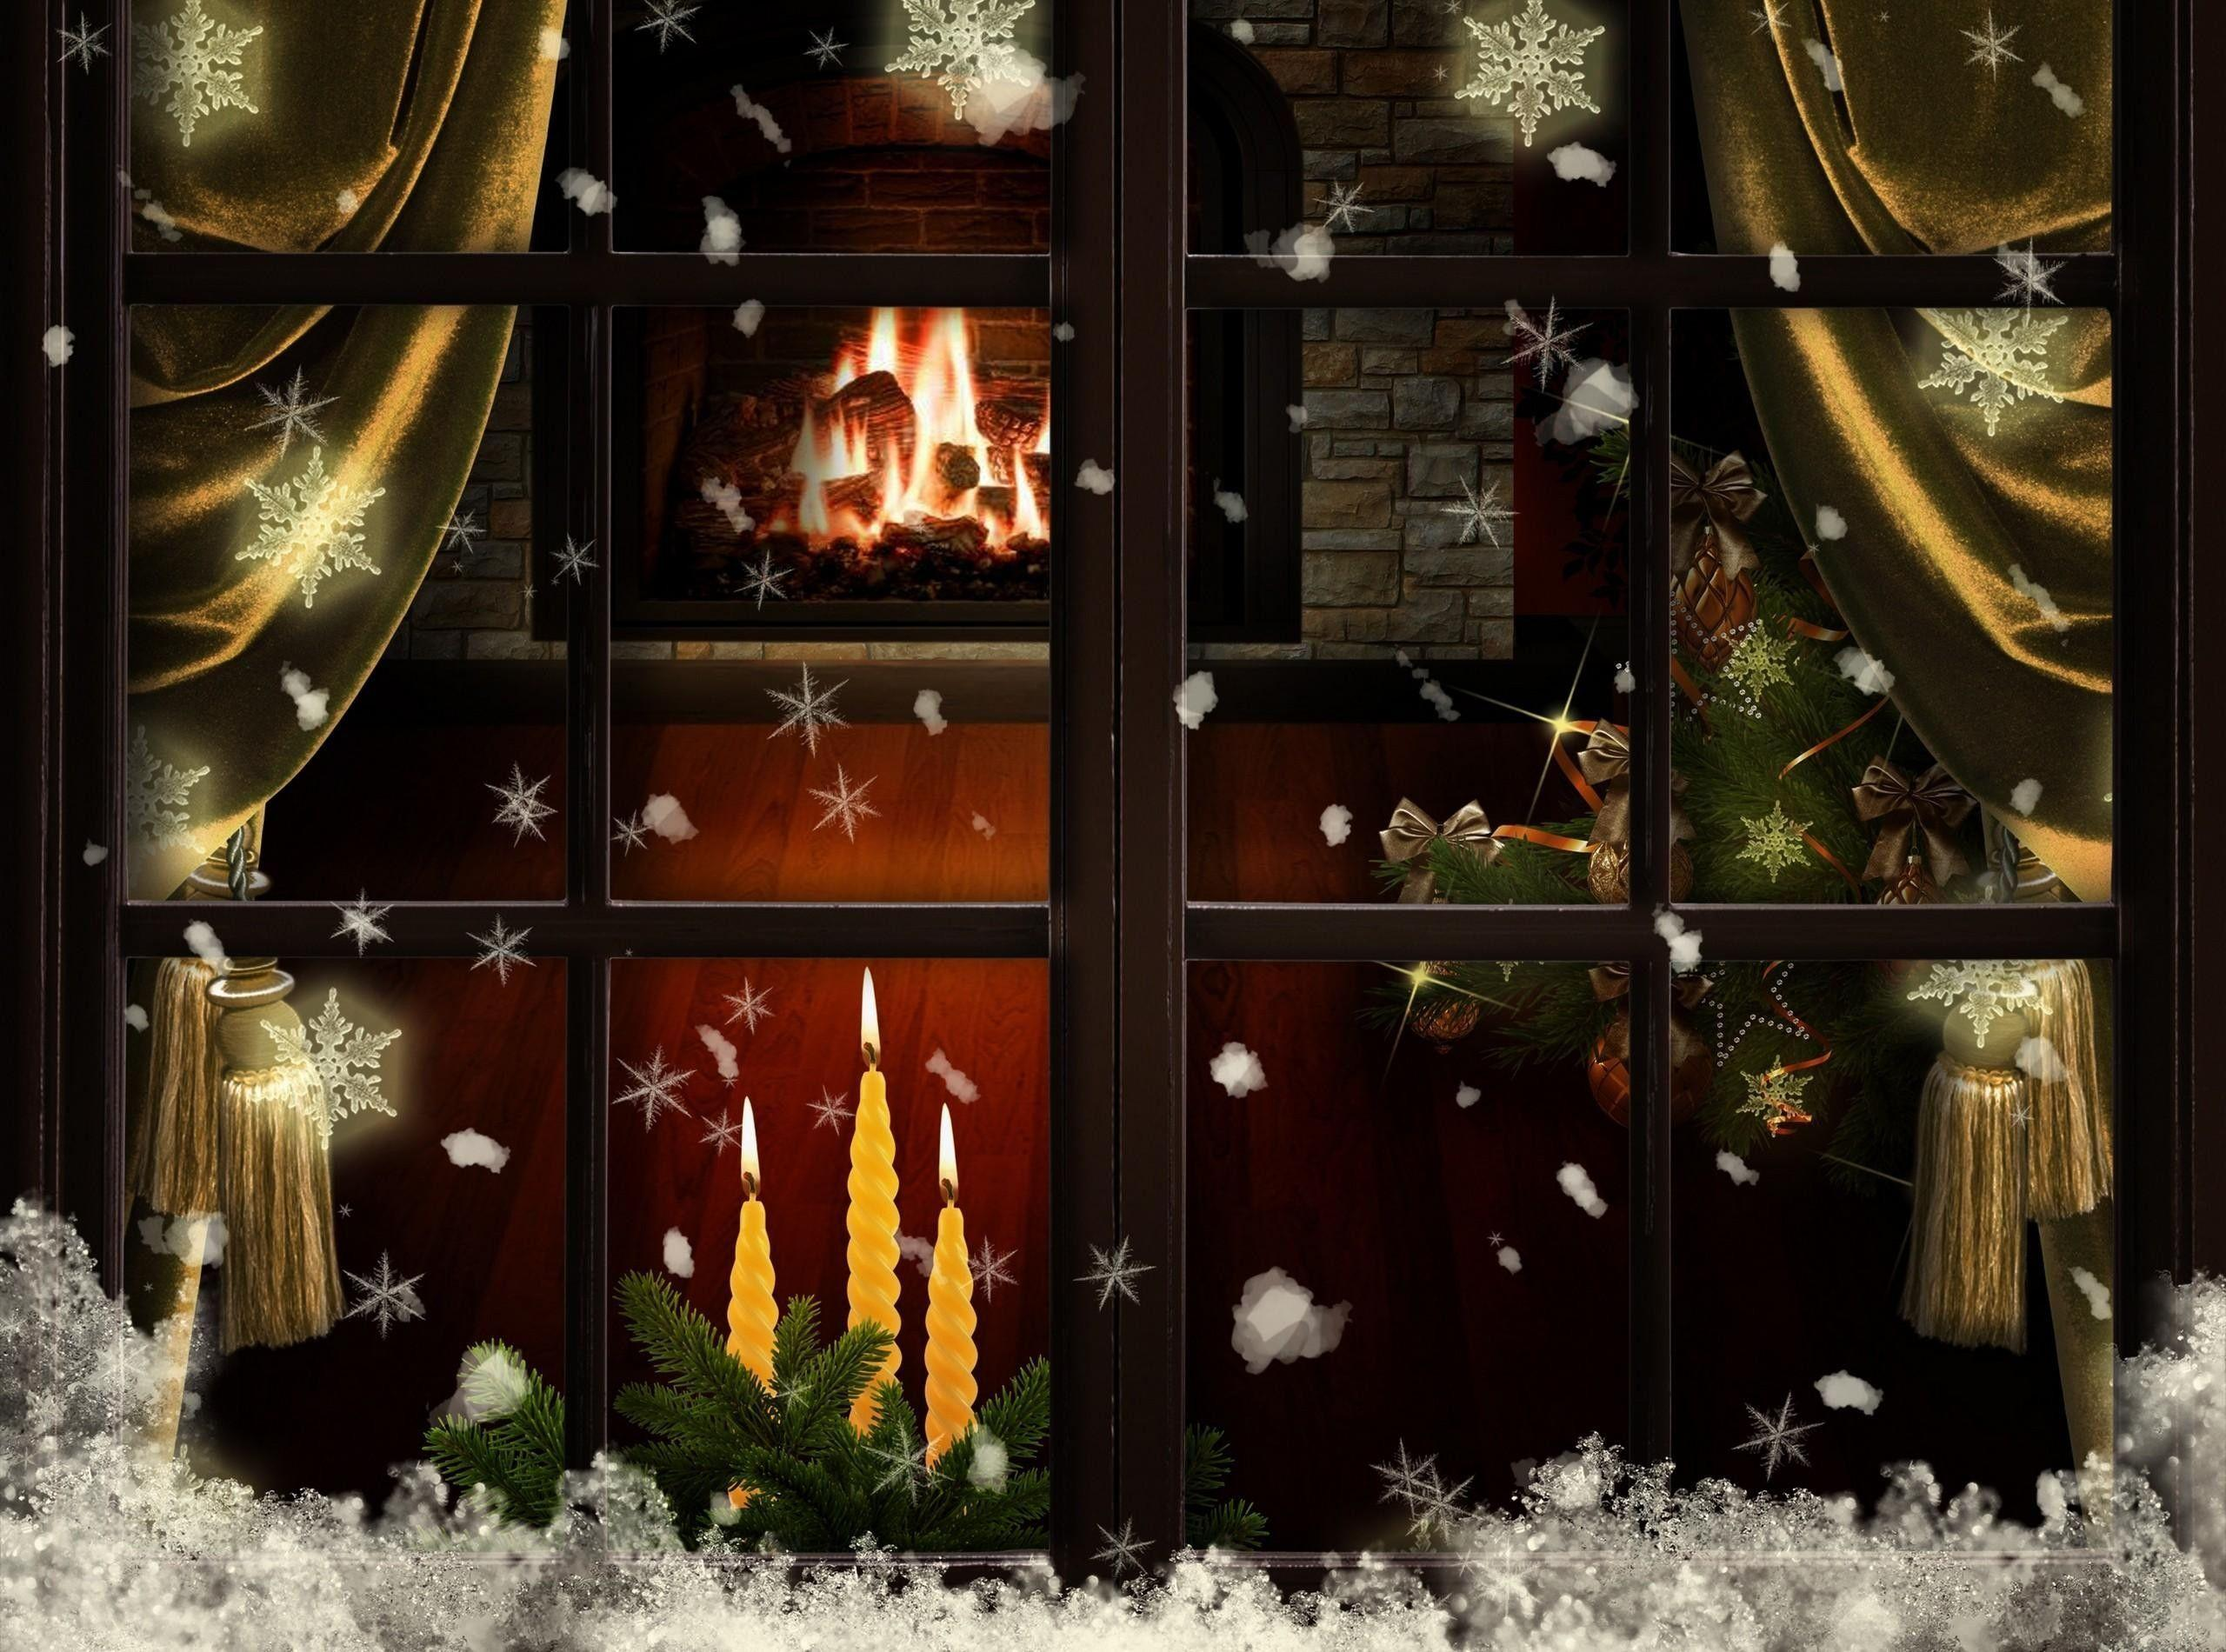 christmas fireplace wallpapers wallpaper cave. Black Bedroom Furniture Sets. Home Design Ideas